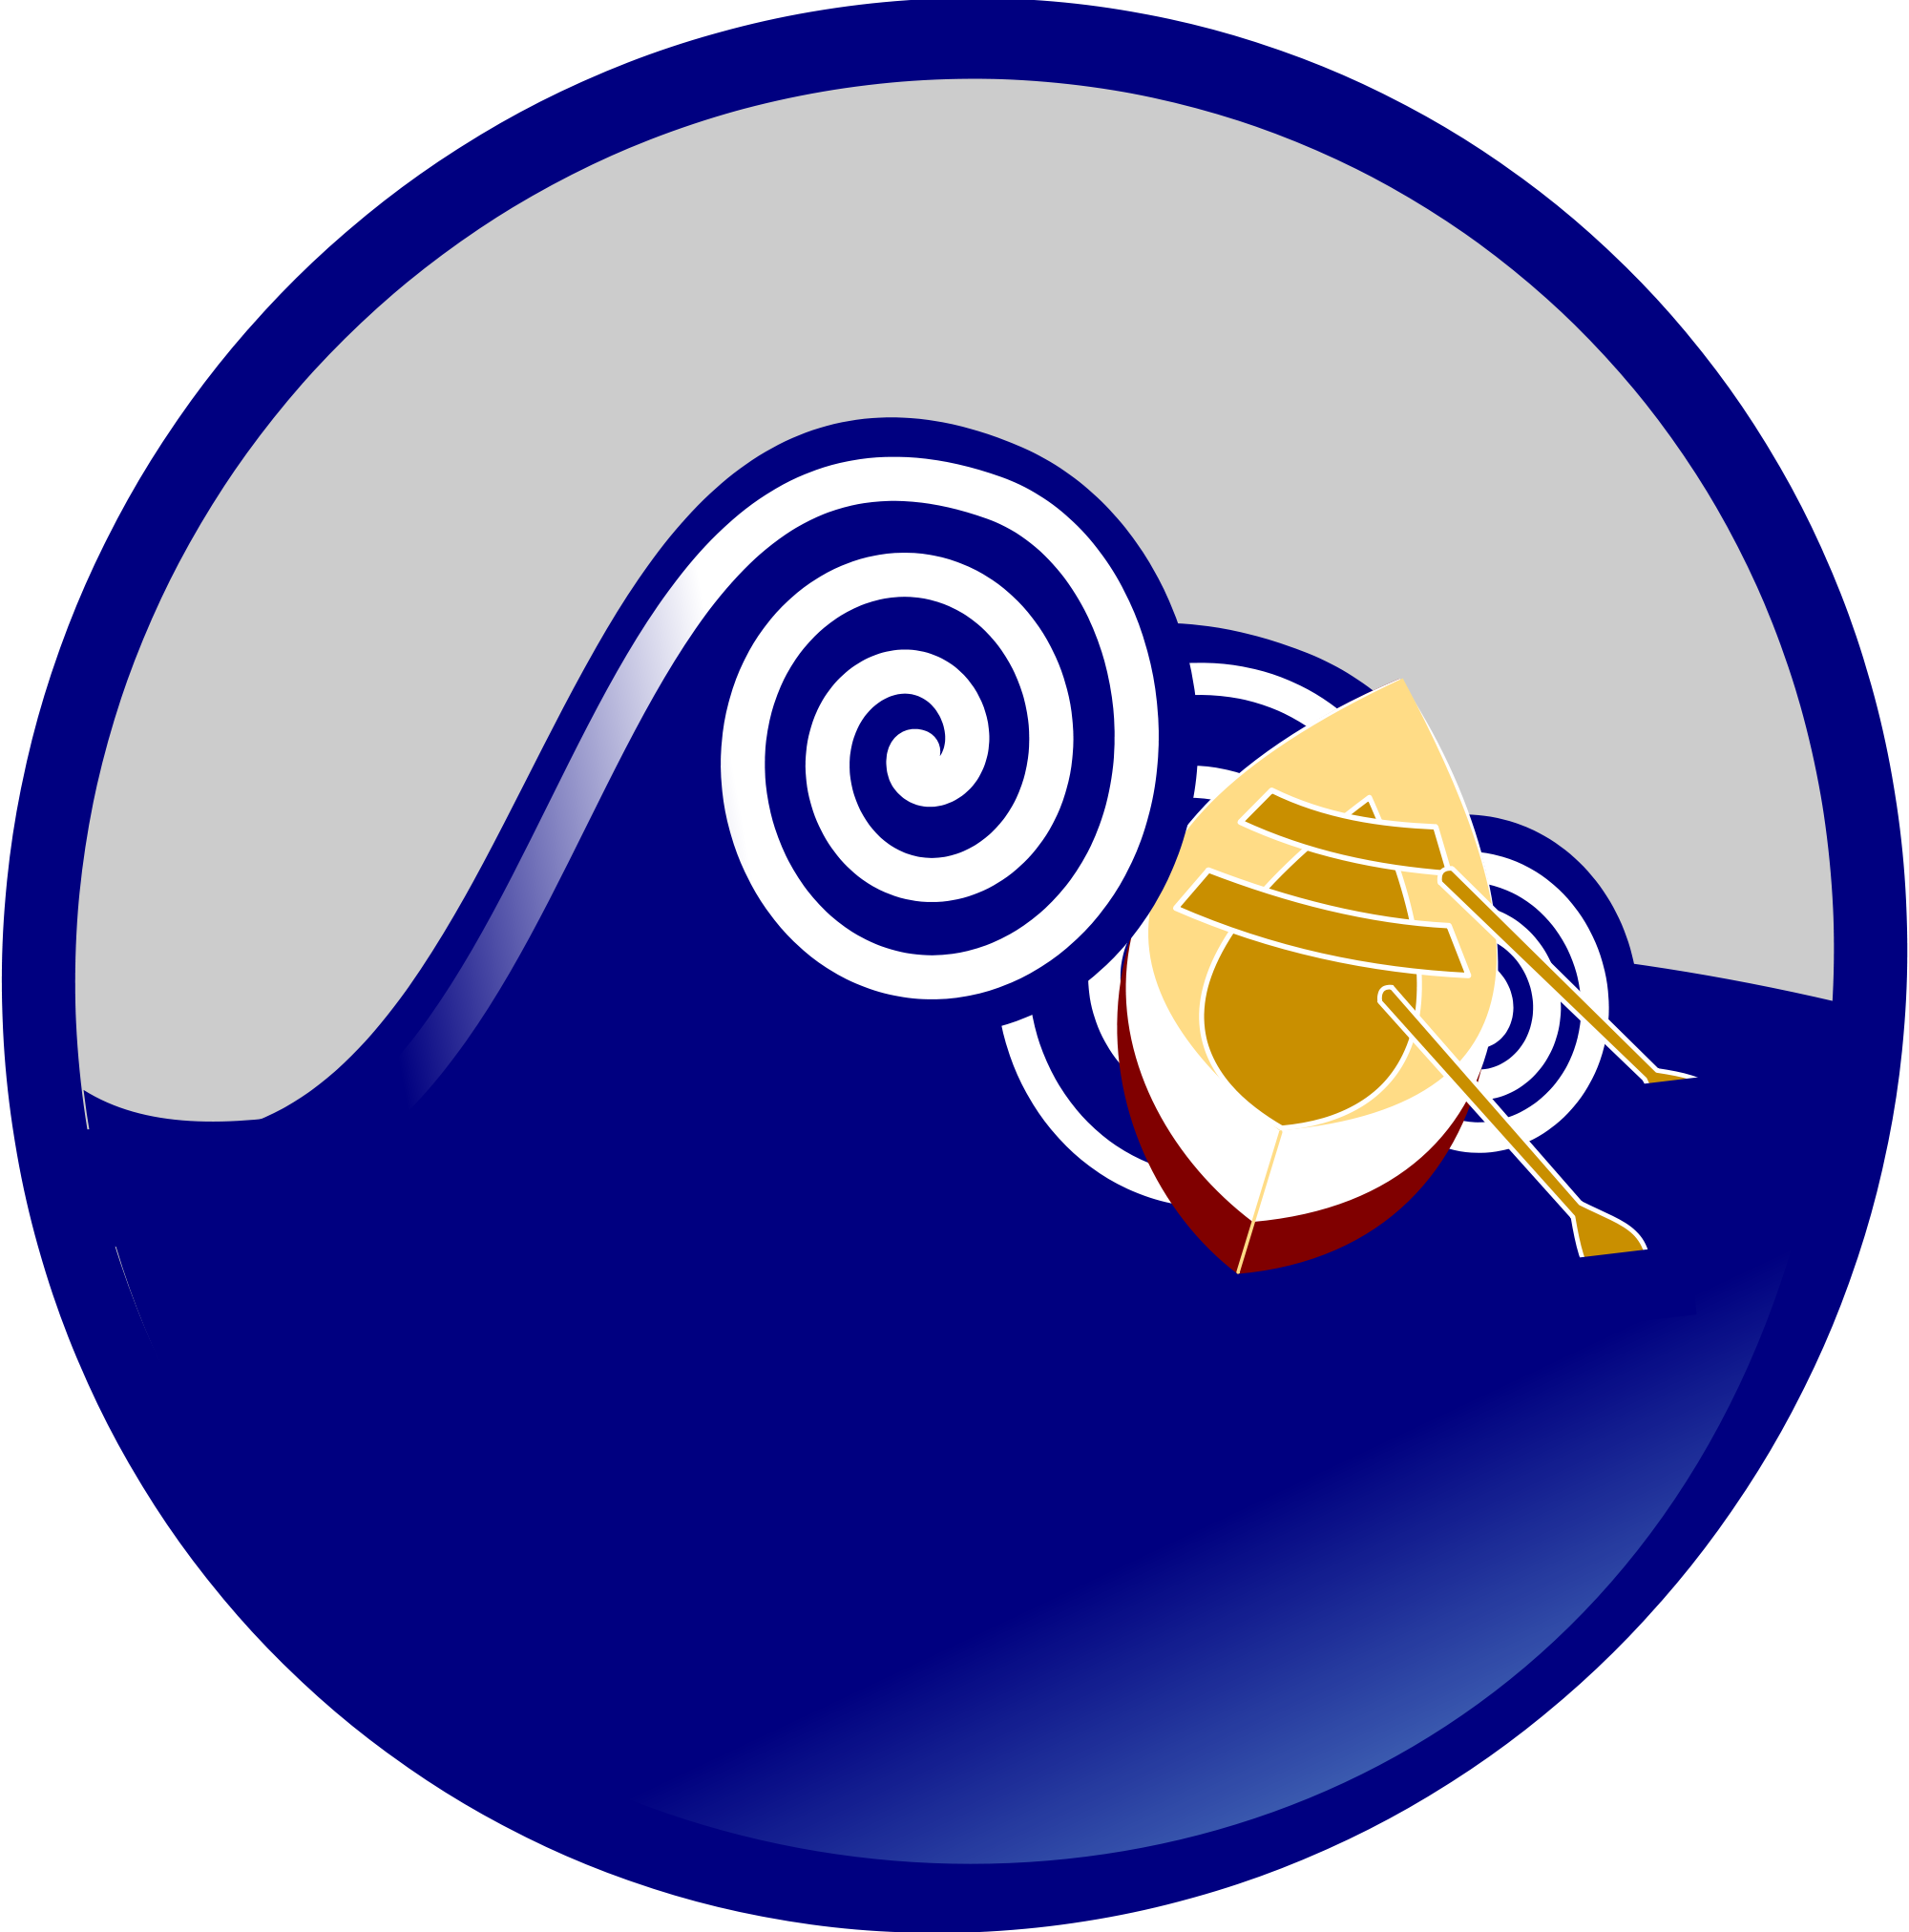 Waves clipart symbol. File ocean surface wave